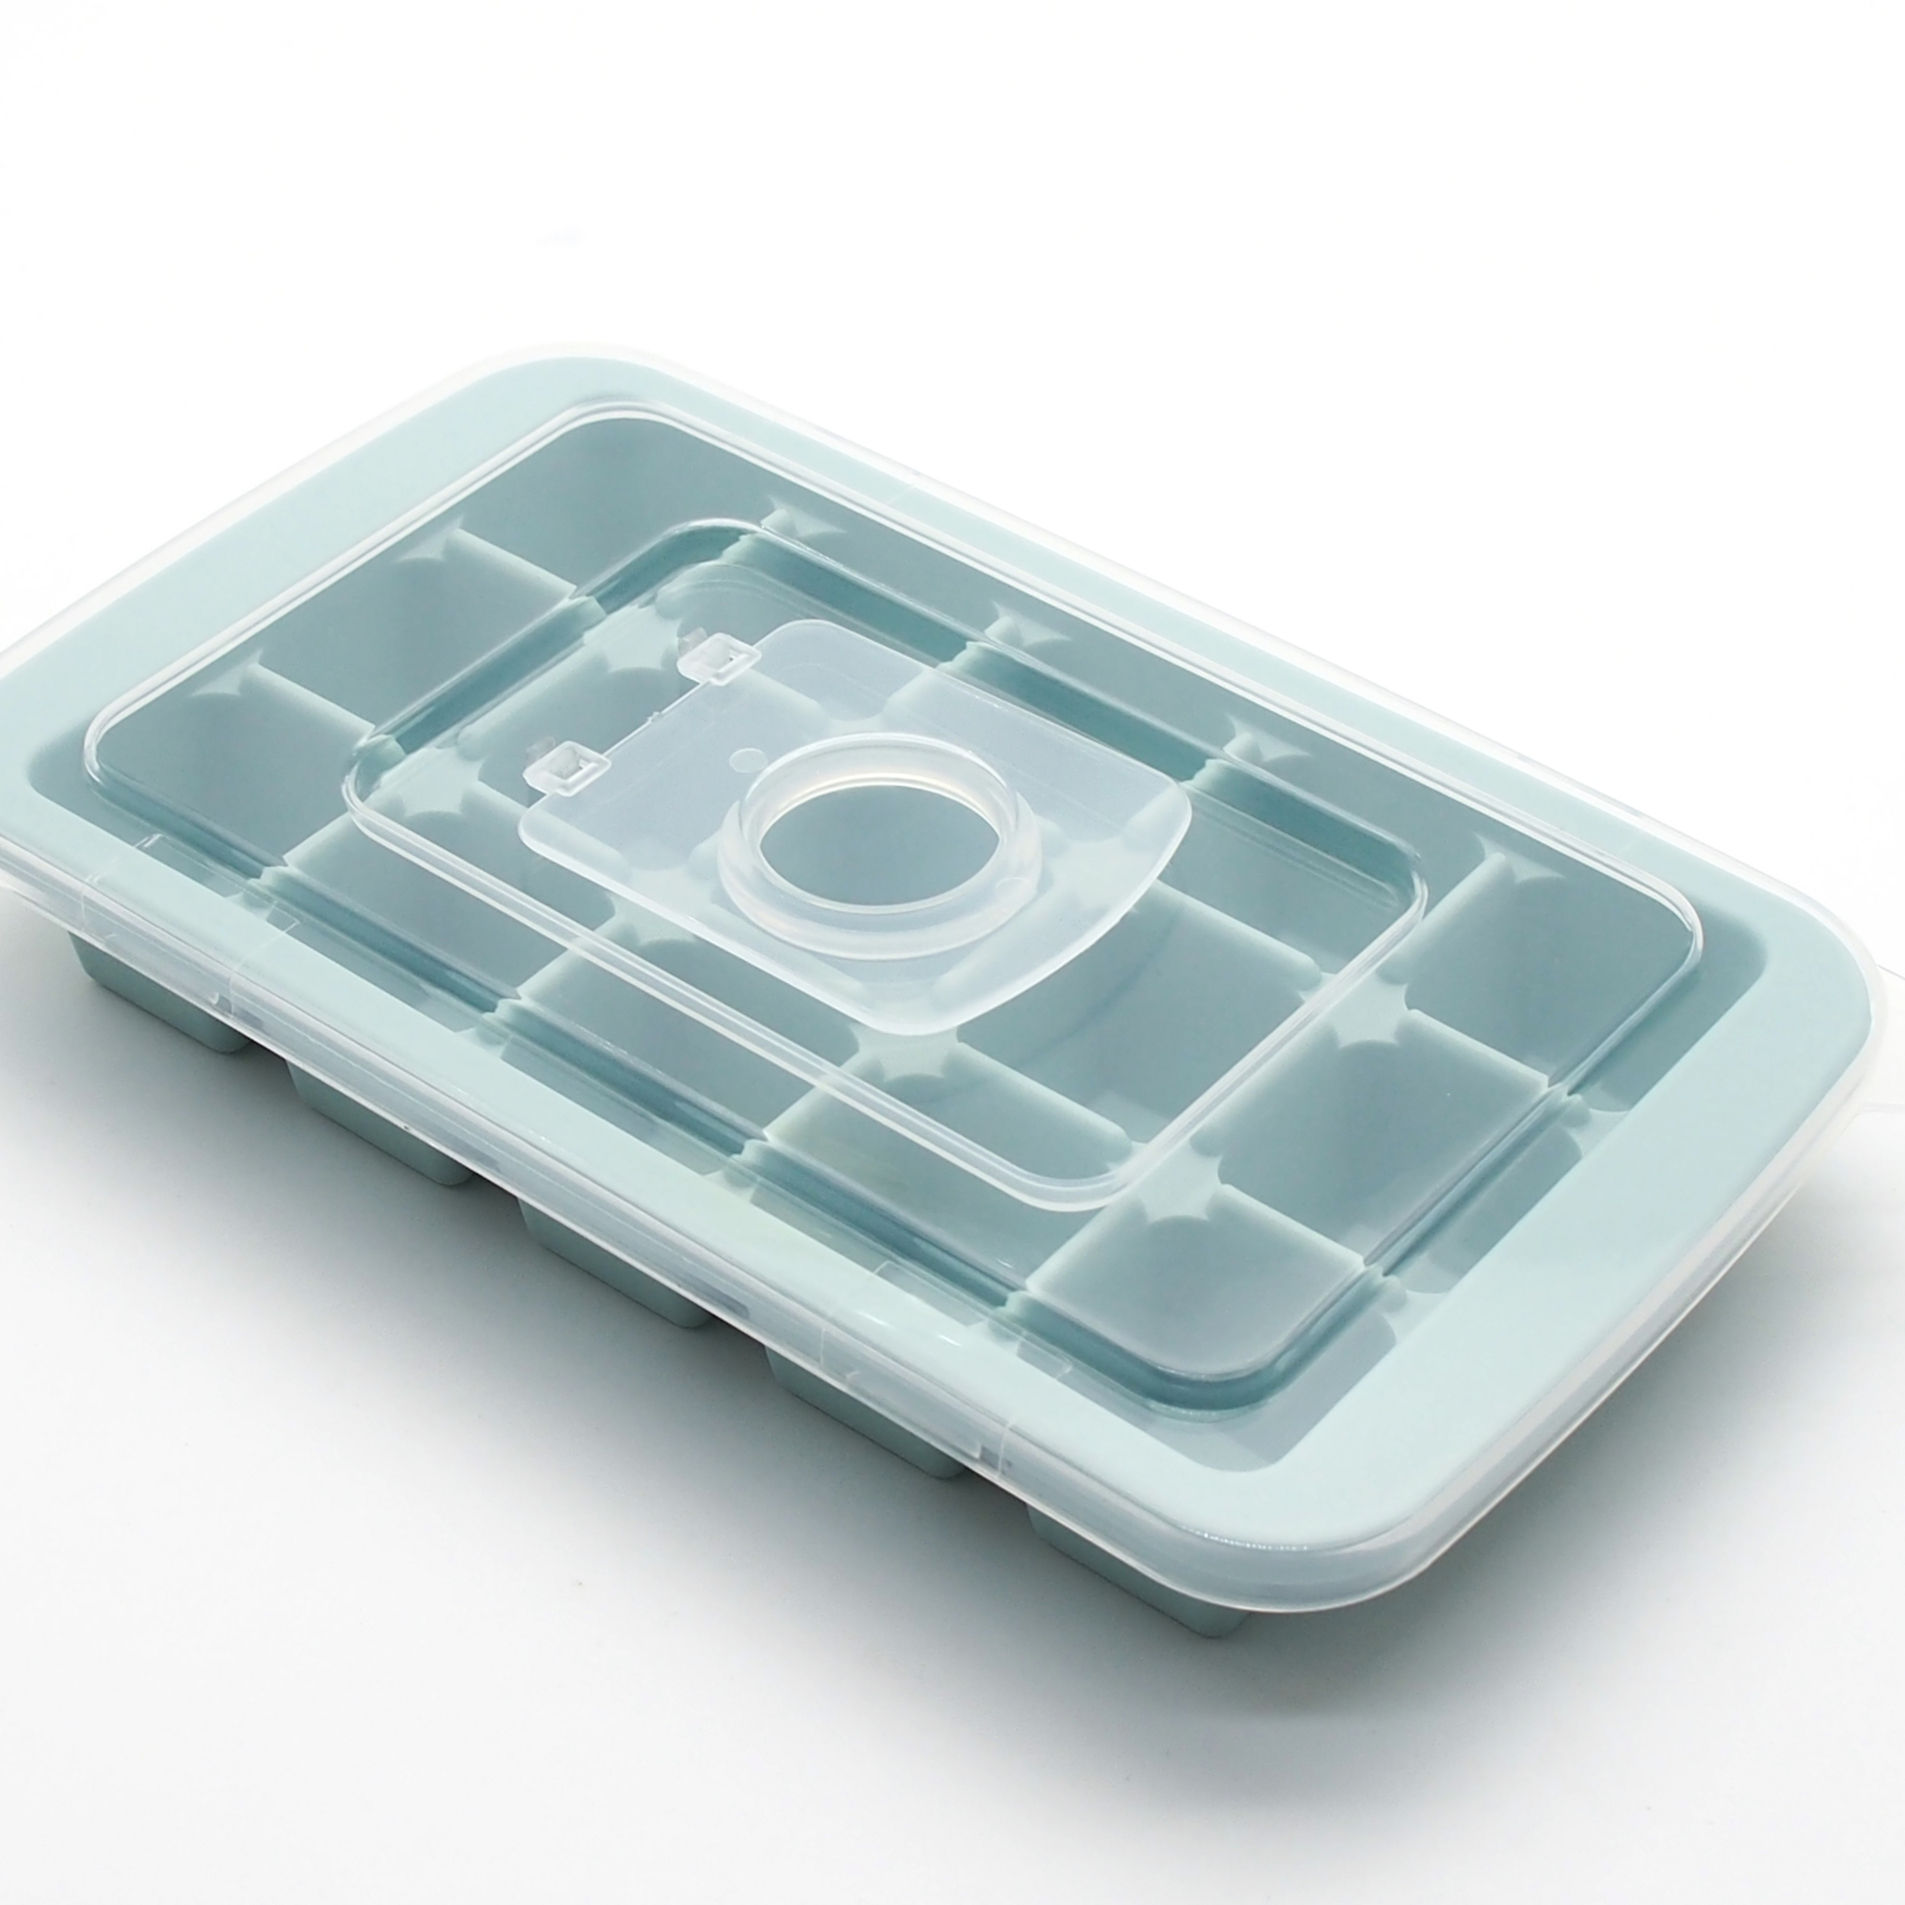 One-Stop Service [ Silicone Ice ] Creative Water Inlet Design 15 Silicone Ice Cube Trays With Lid